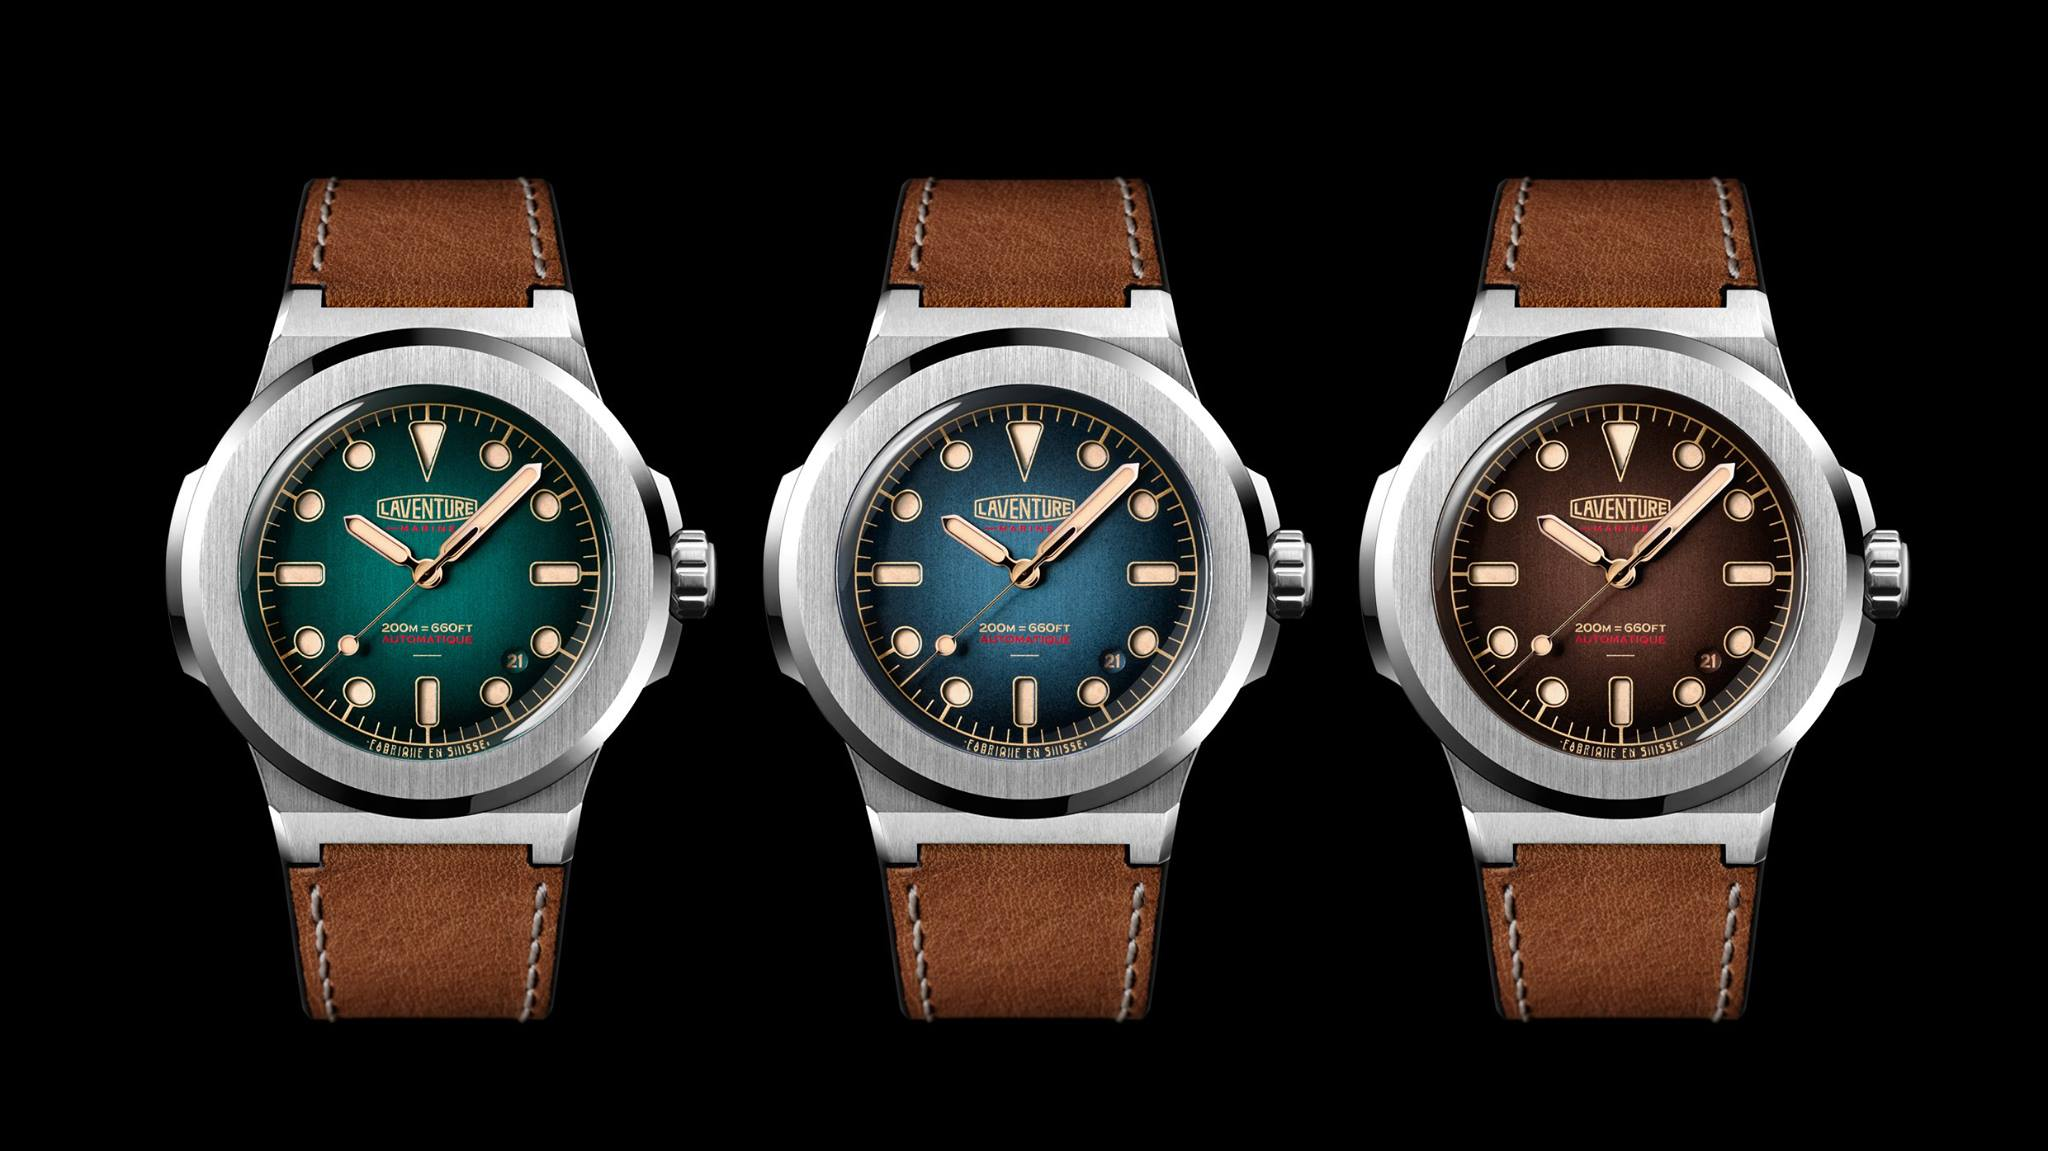 Laventure Watches Kickstarter